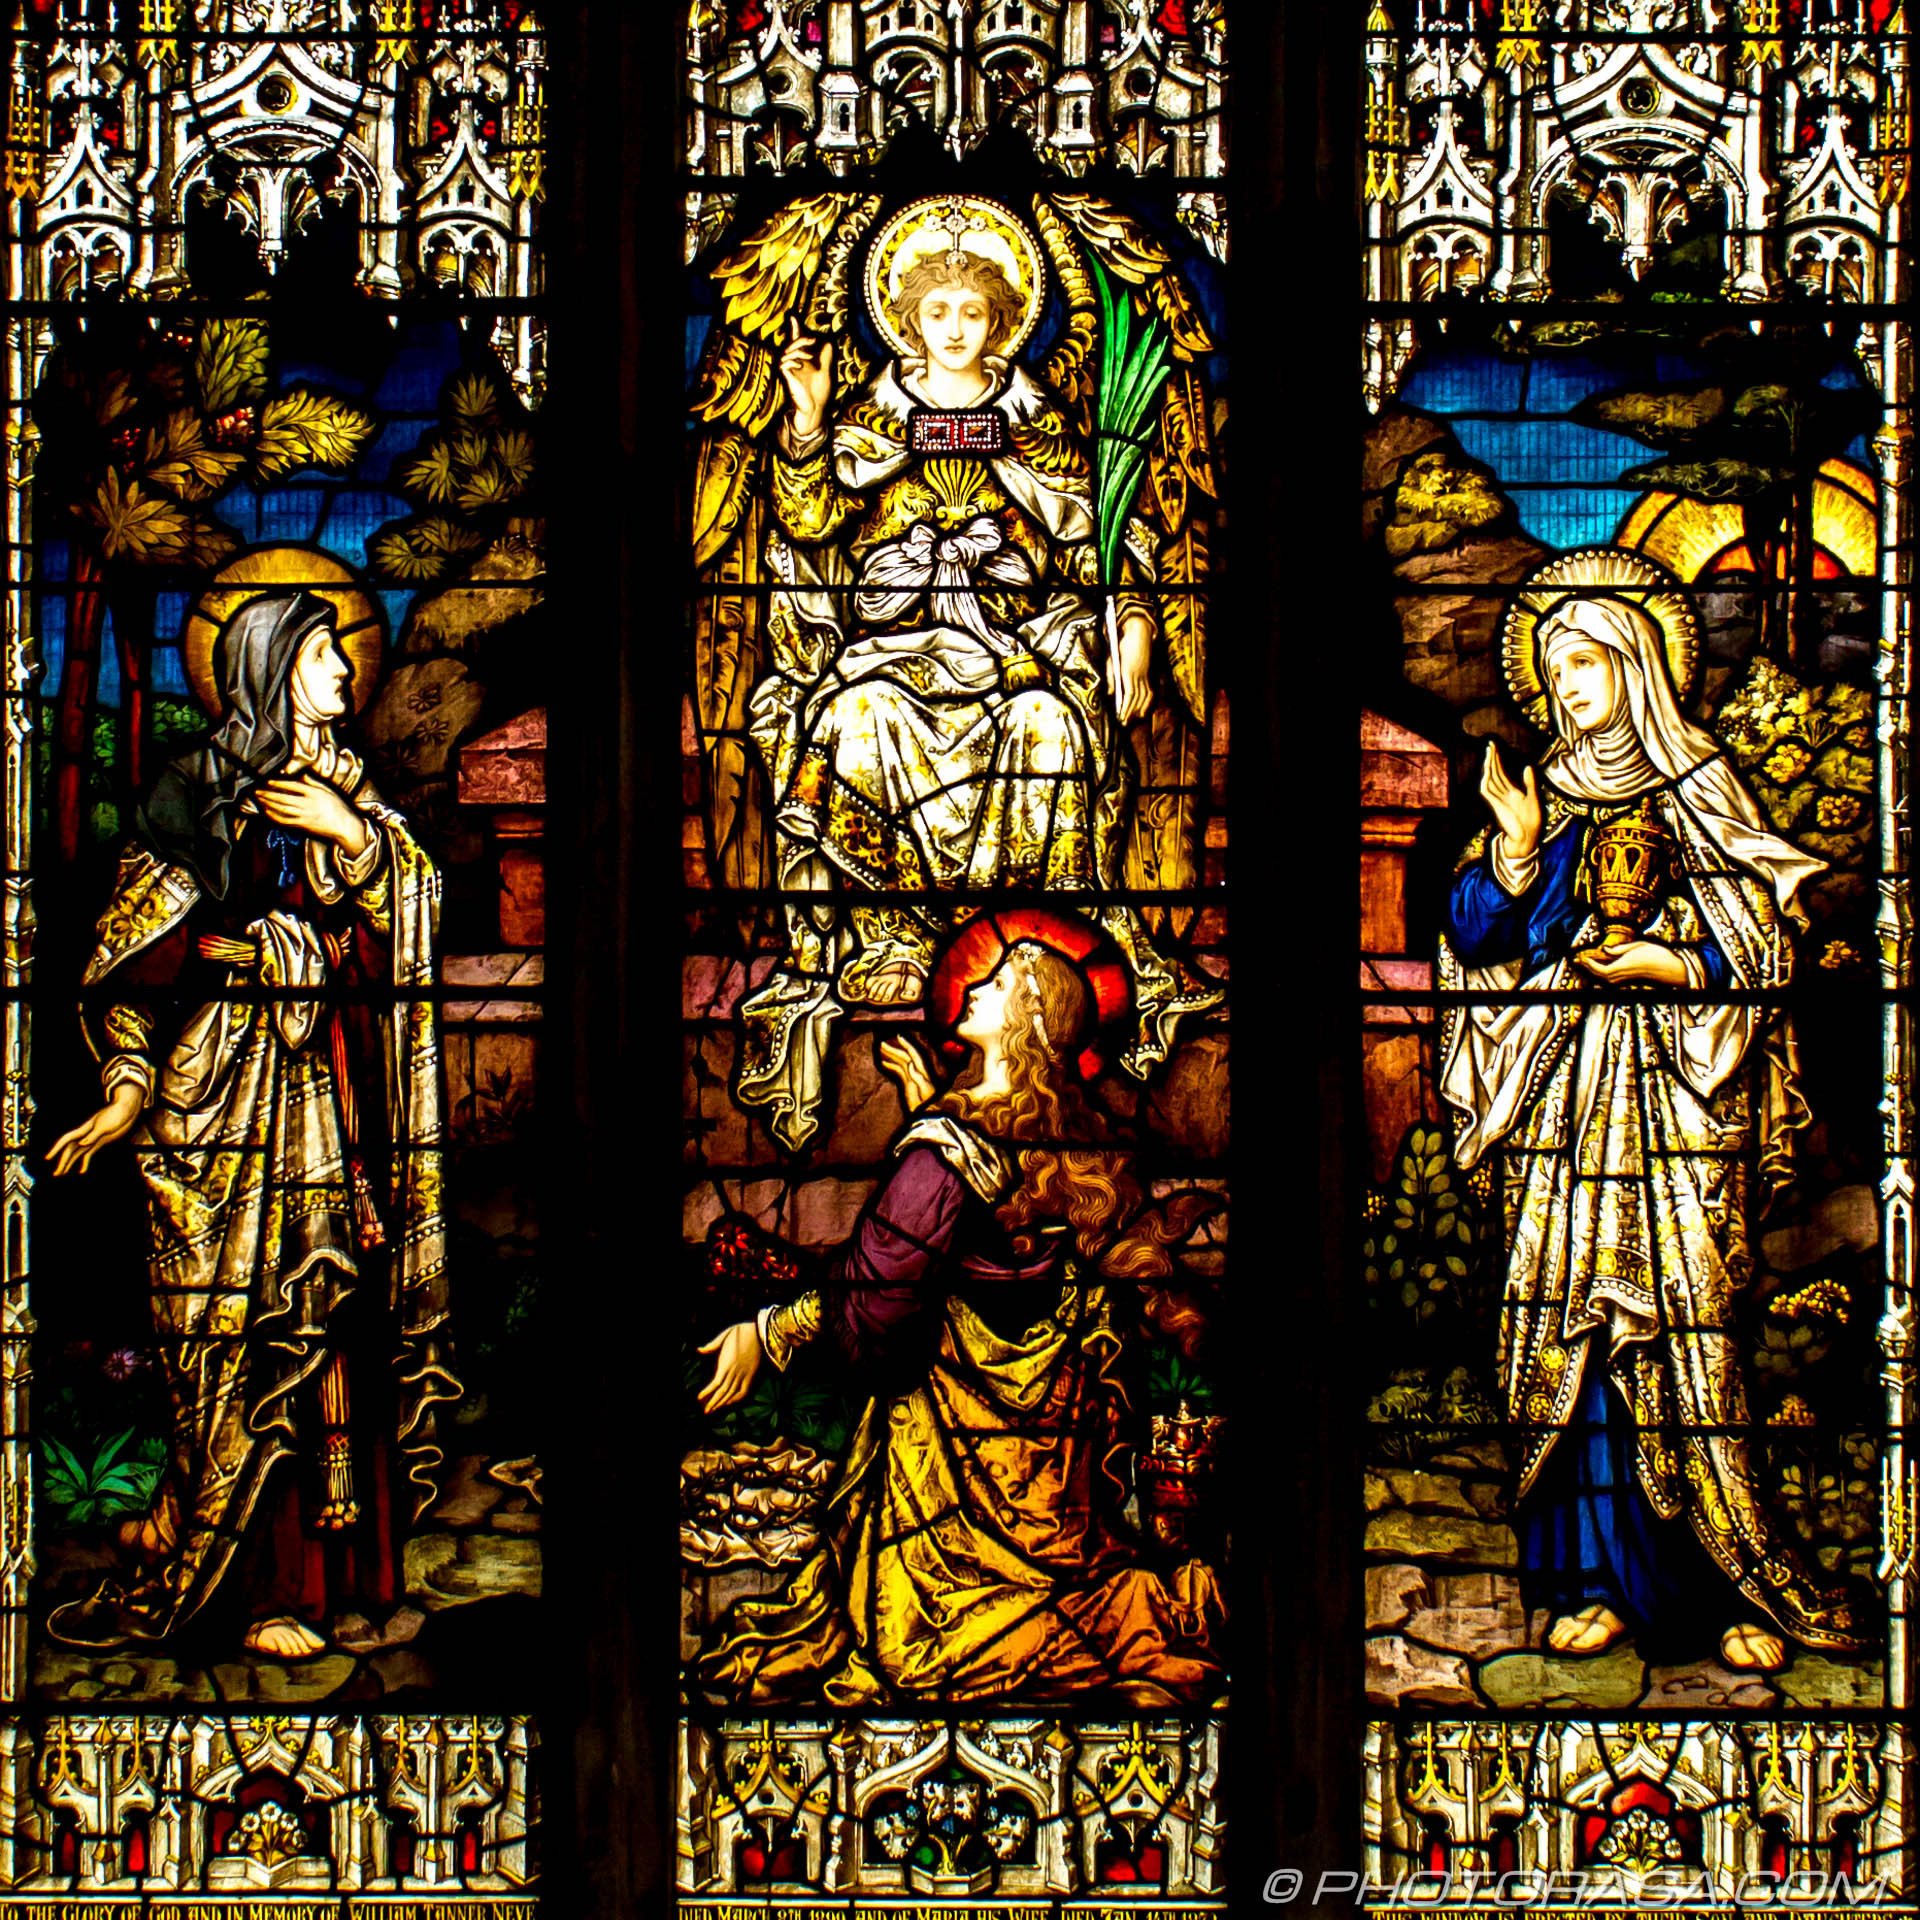 http://photorasa.com/st-dunstans-church-cranbrook/stained-glass-depicting-the-resurrection-of-christ/